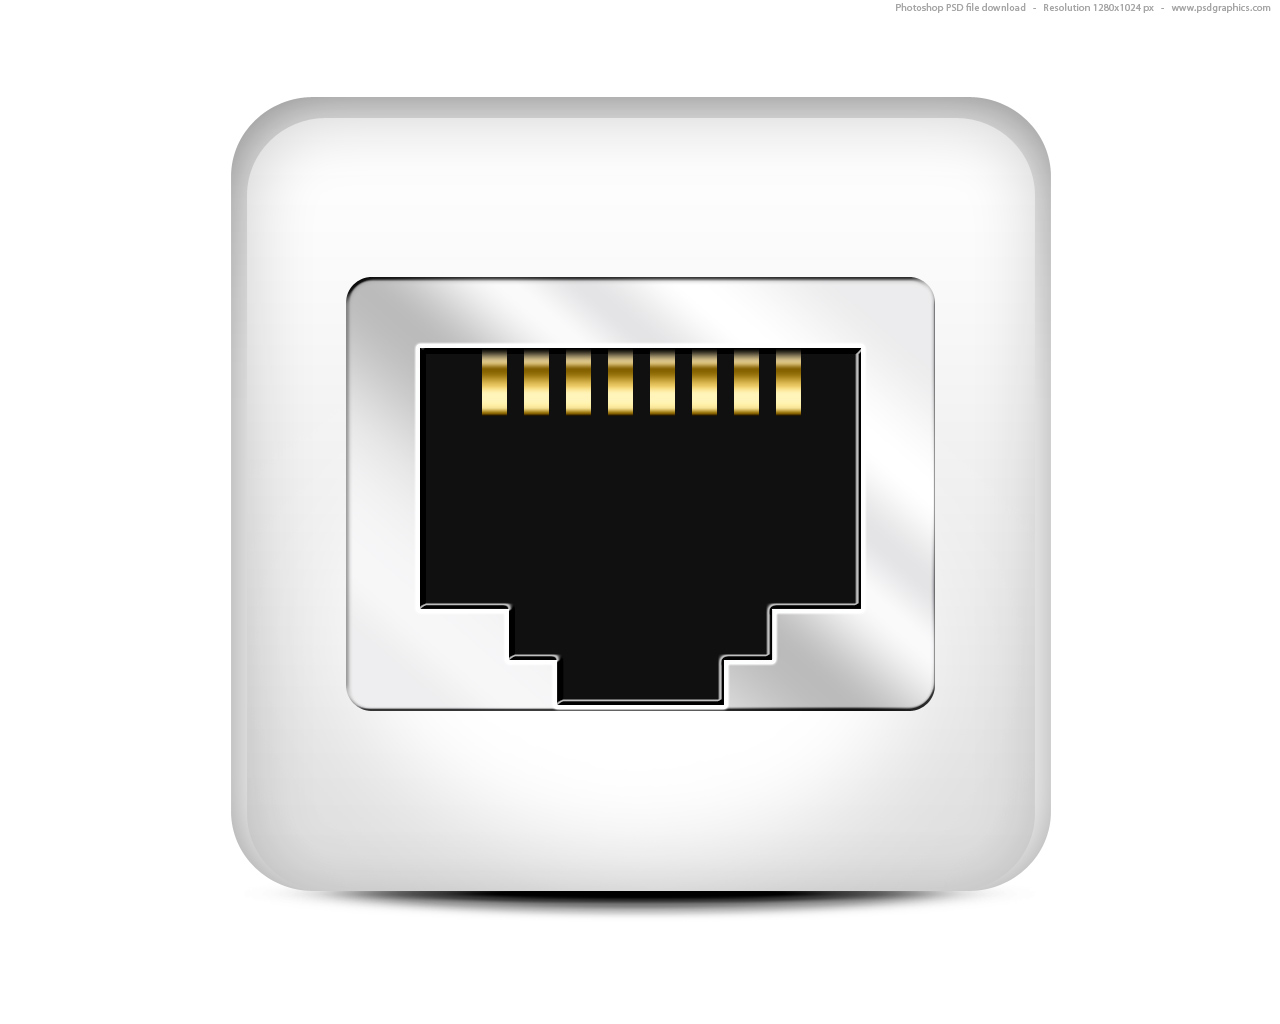 7 Computer Network Icon Images